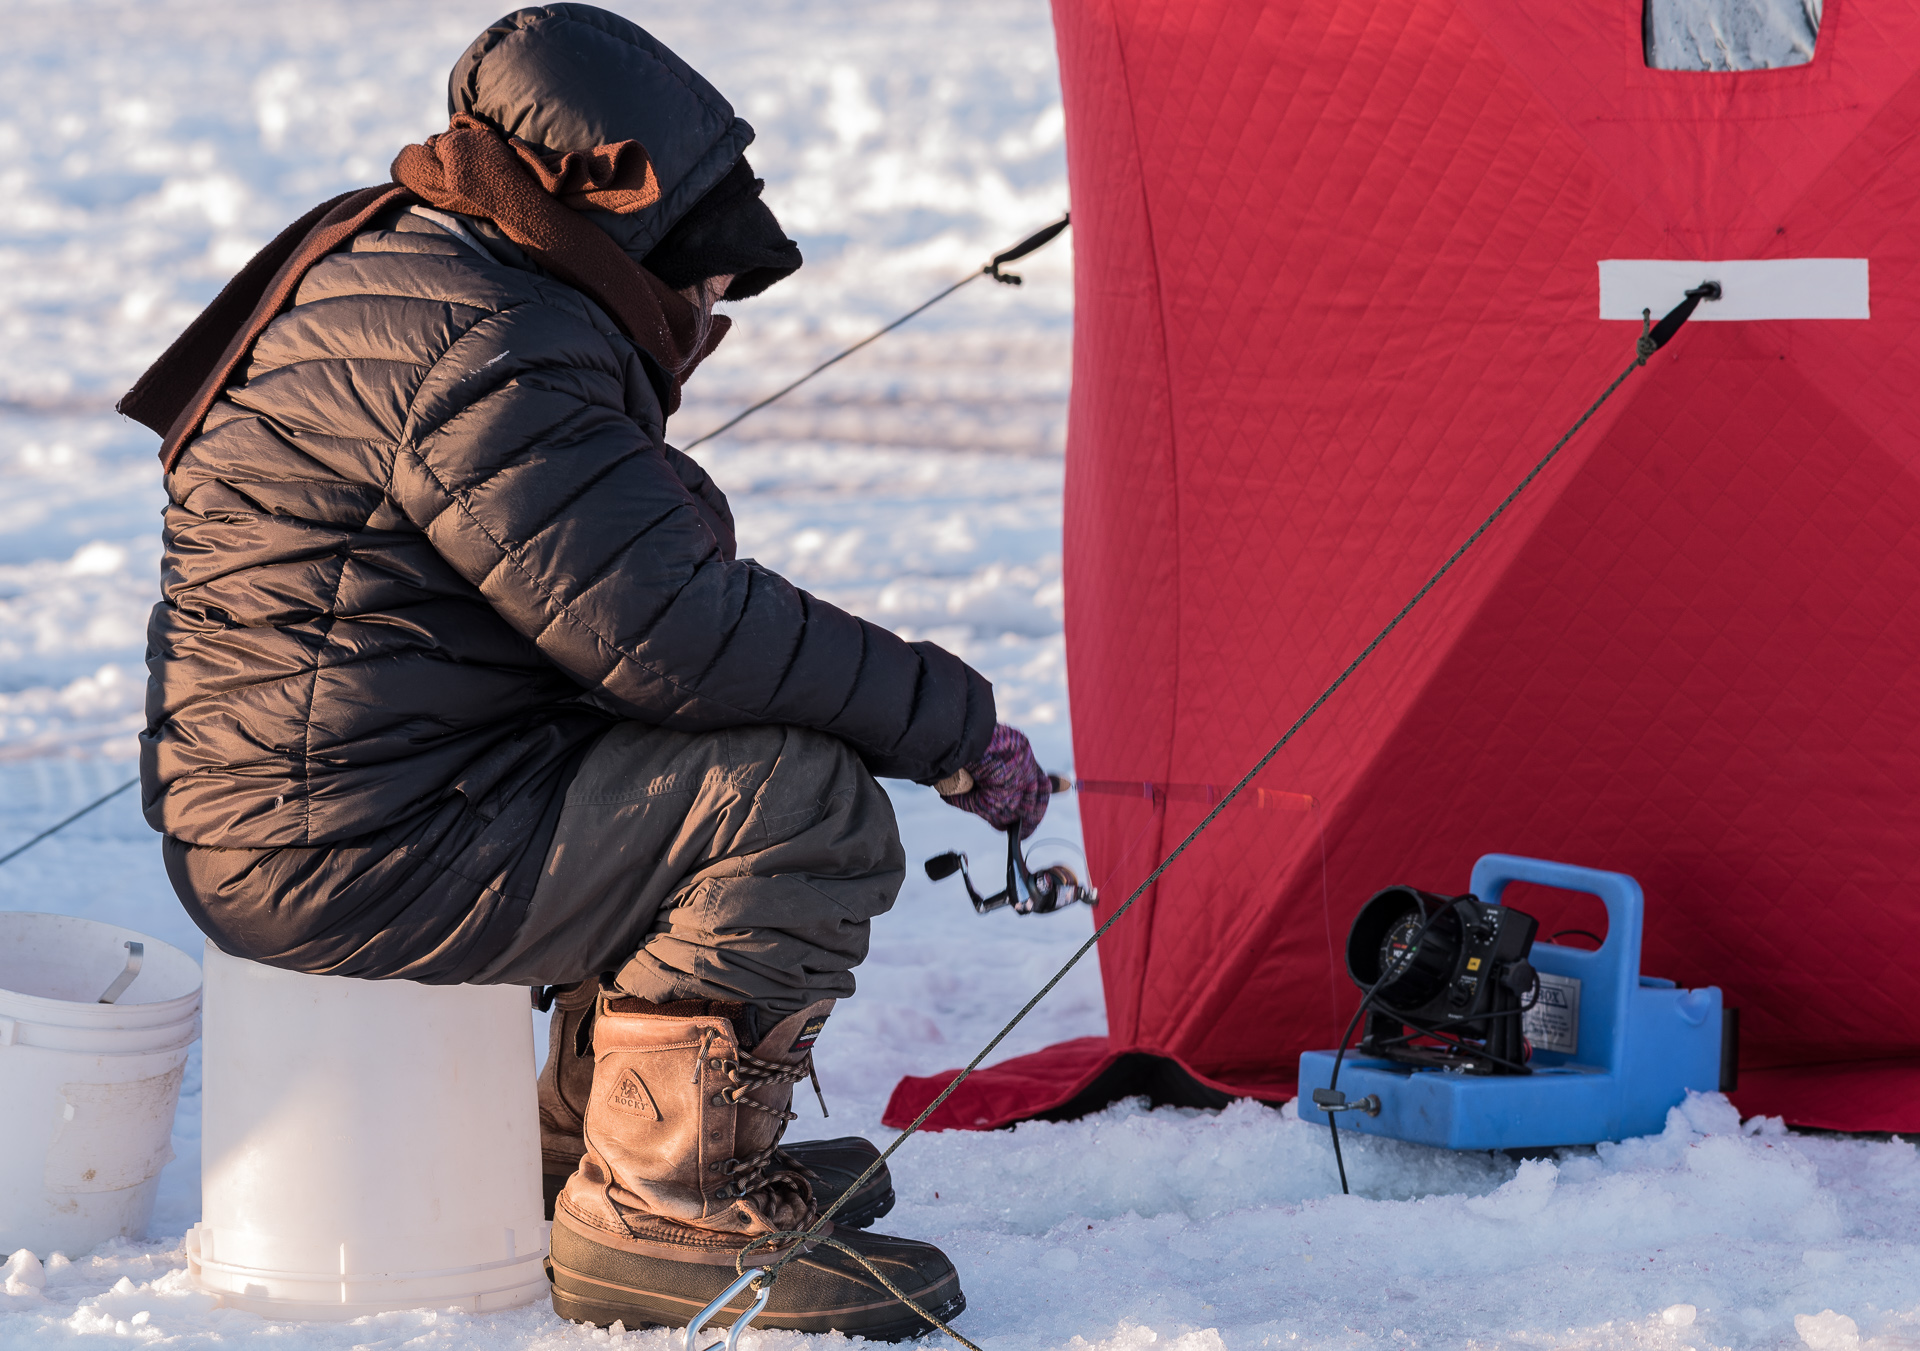 Ice Fishing on Lake Peltier - Digital (Winter) - Name Withheld Per Request